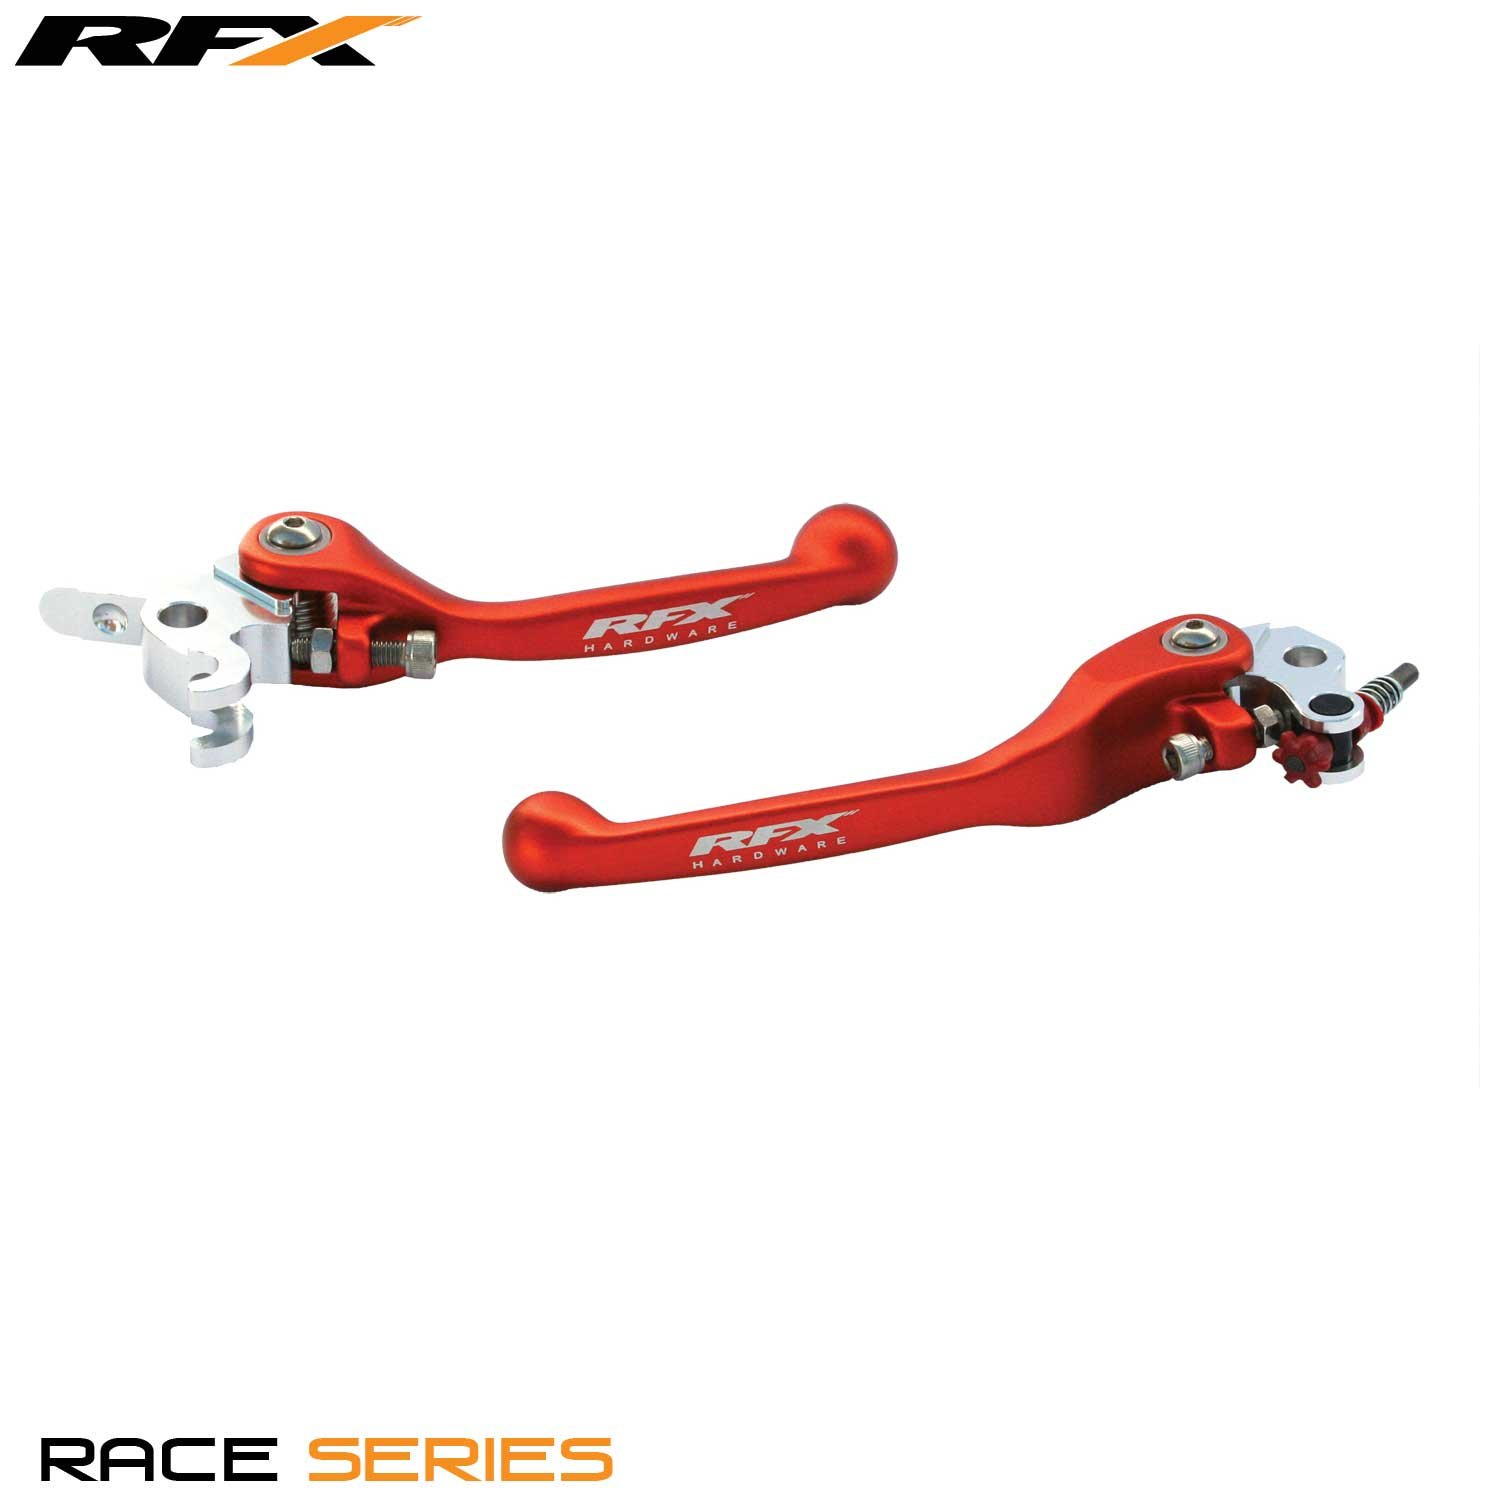 Rfx Fxfl 50300  55OR forgiata flessibile leva set KTM SX125  EXC125  05  –   08/144/200/200  05  –   08 FXFL 50300 55OR